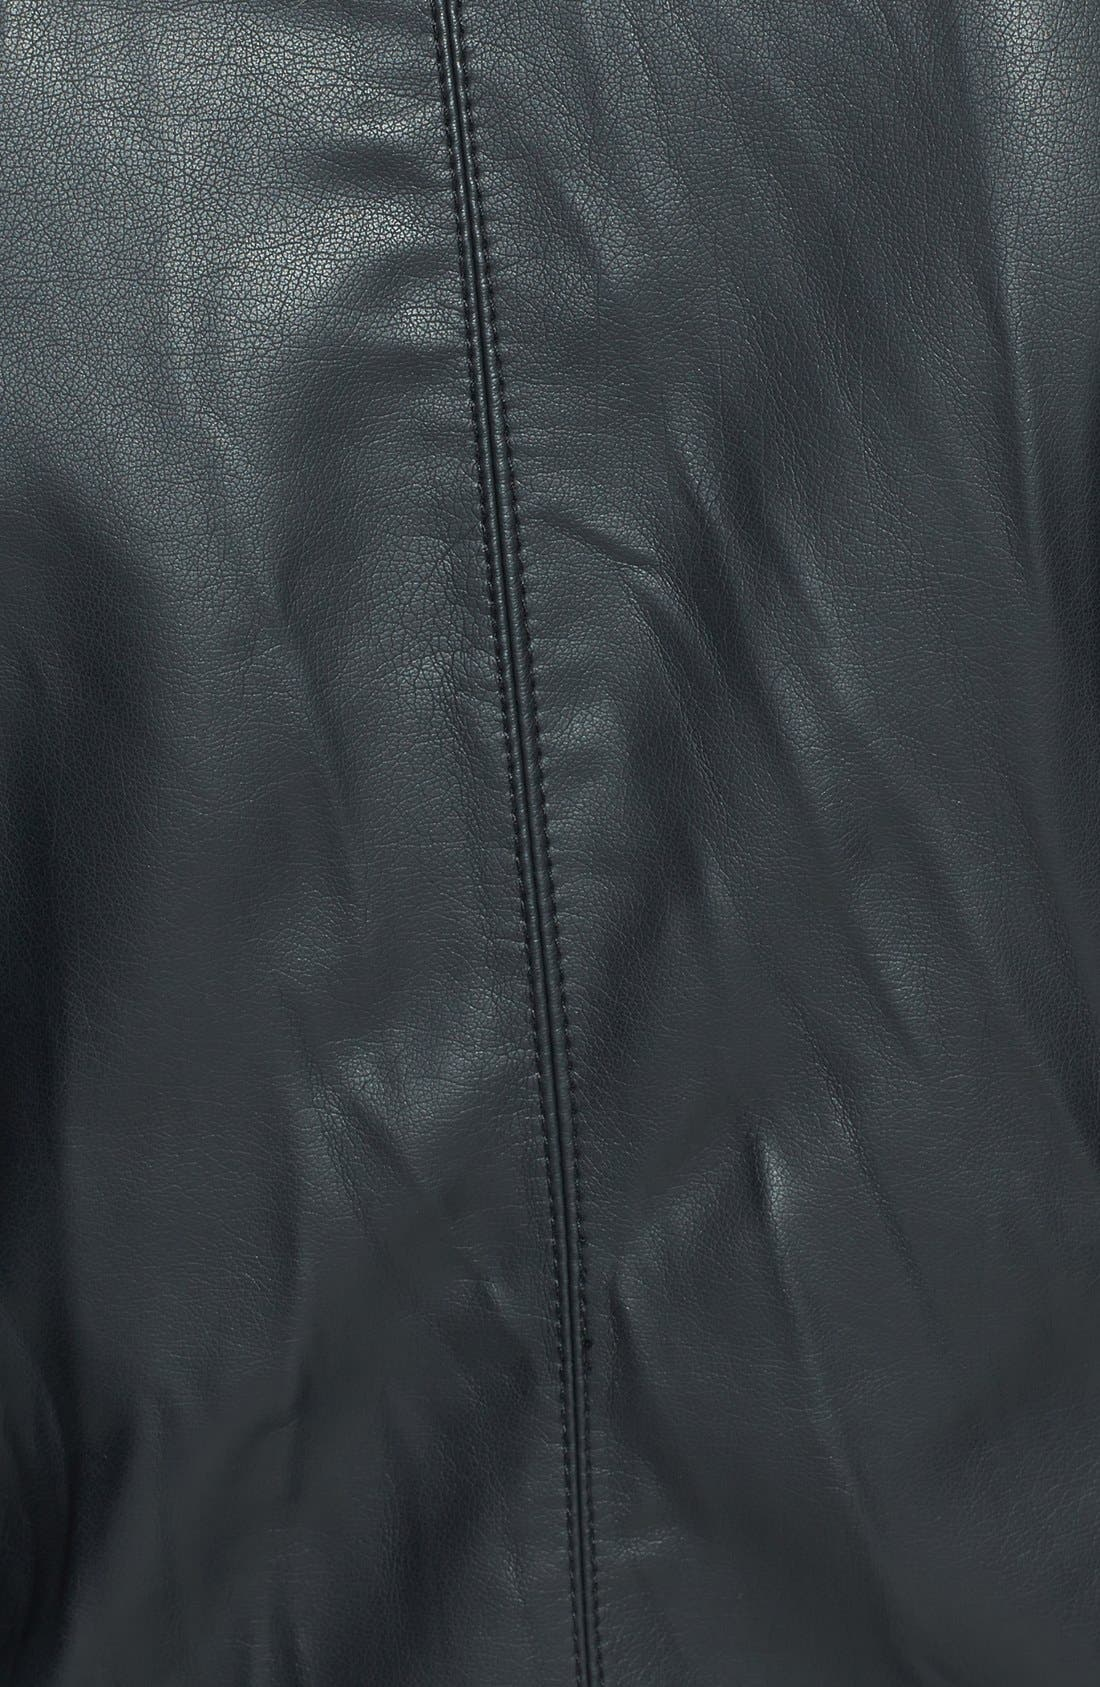 Fitted Faux Leather & Knit Jacket,                             Alternate thumbnail 3, color,                             001